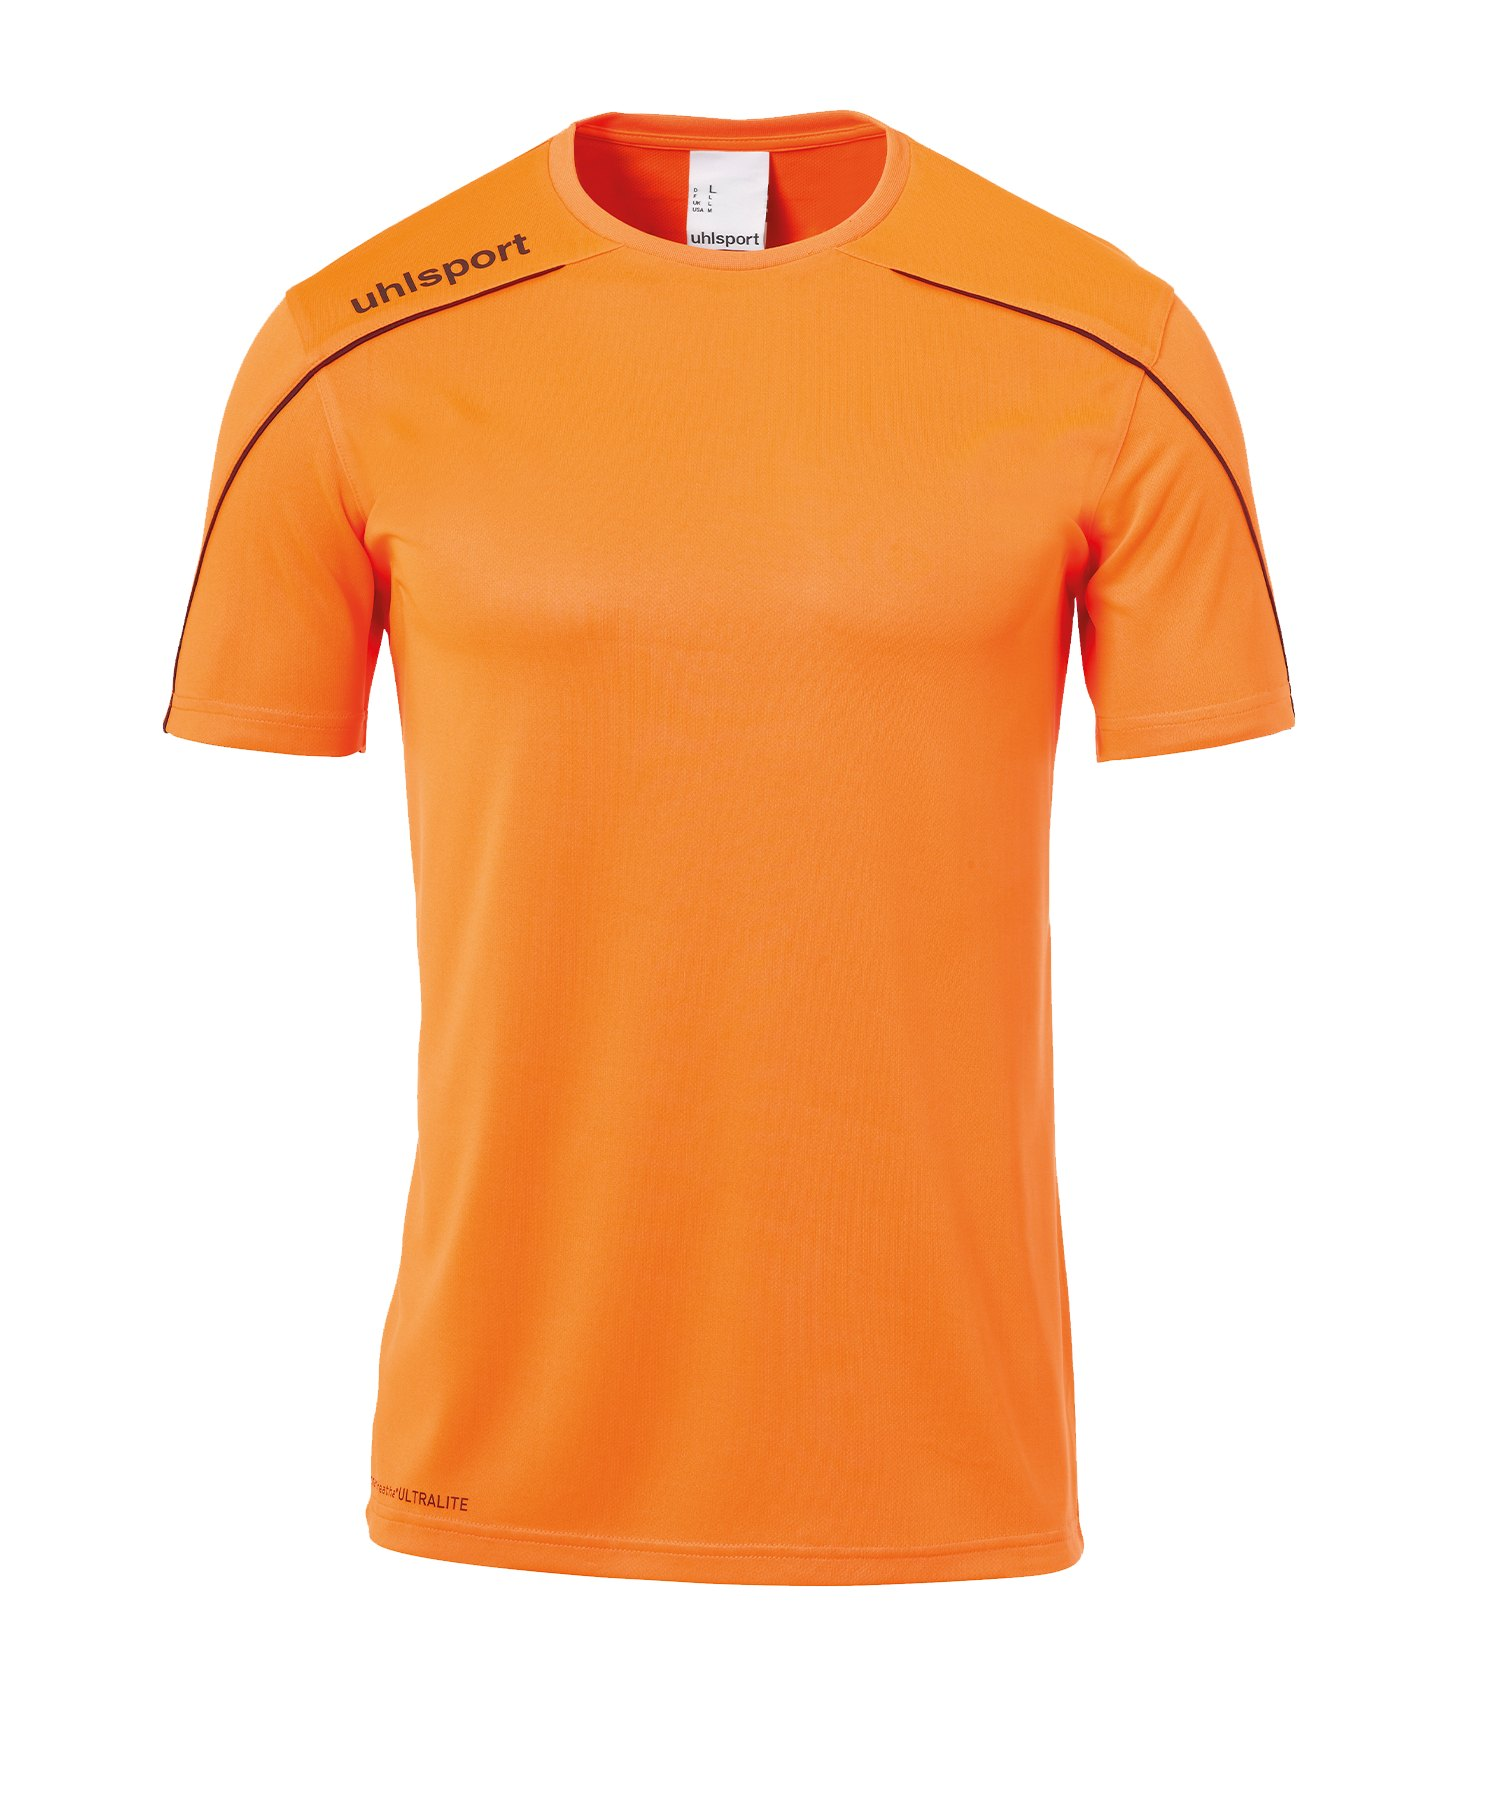 Uhlsport Stream 22 Trikot kurzarm Orange F09 - Orange